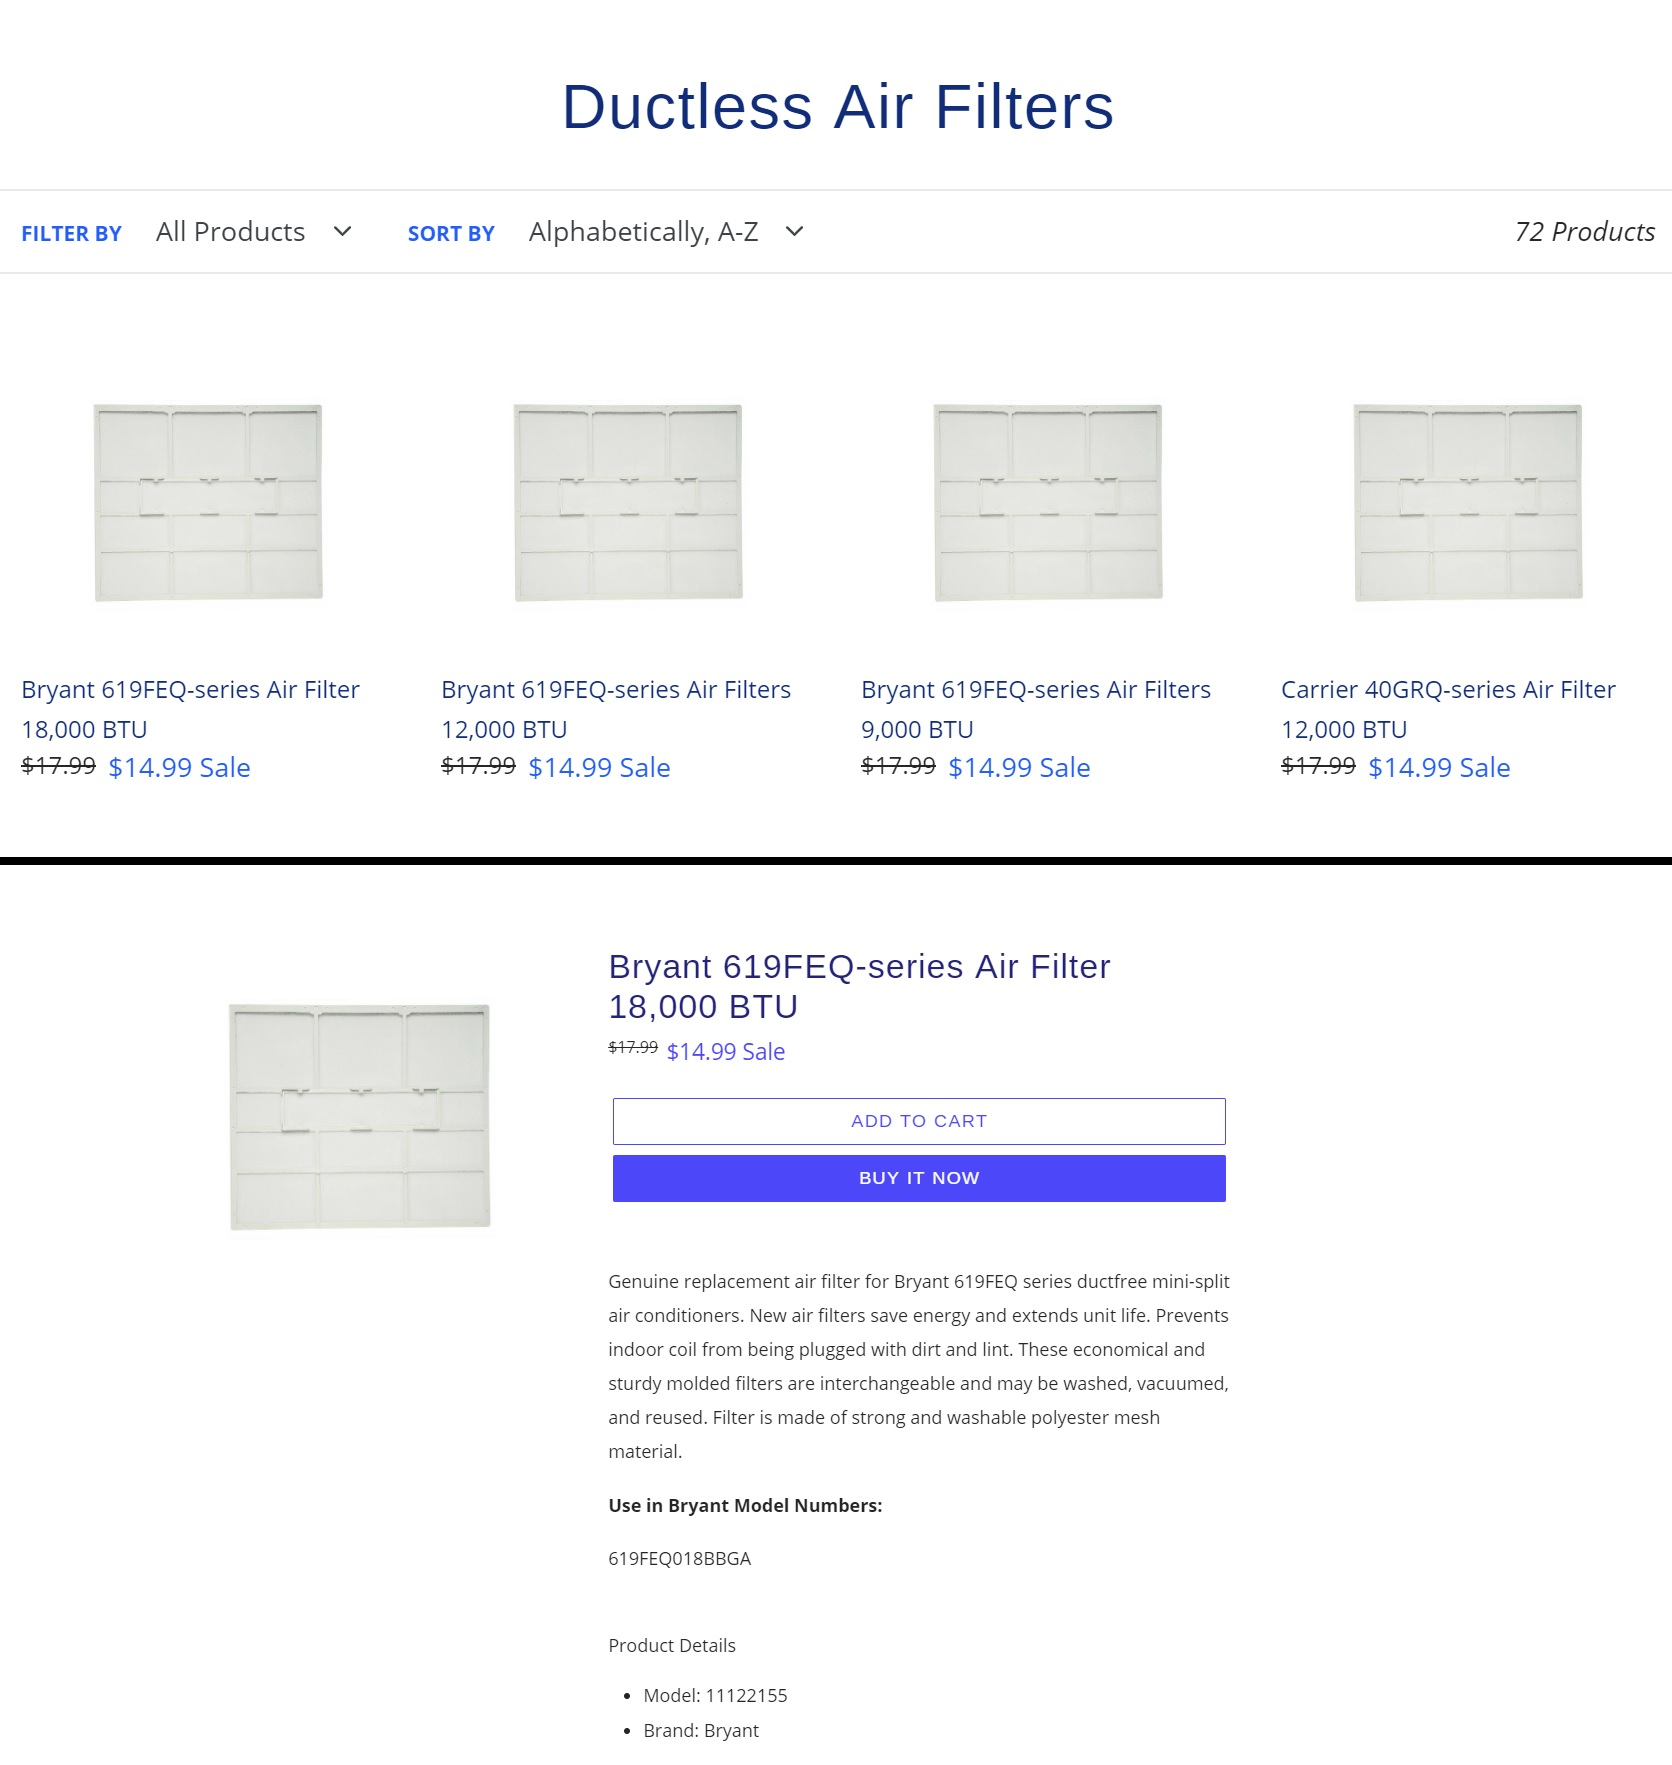 ecommerce website design product categories and product detail pages for genuine air filters from acs web design and seo